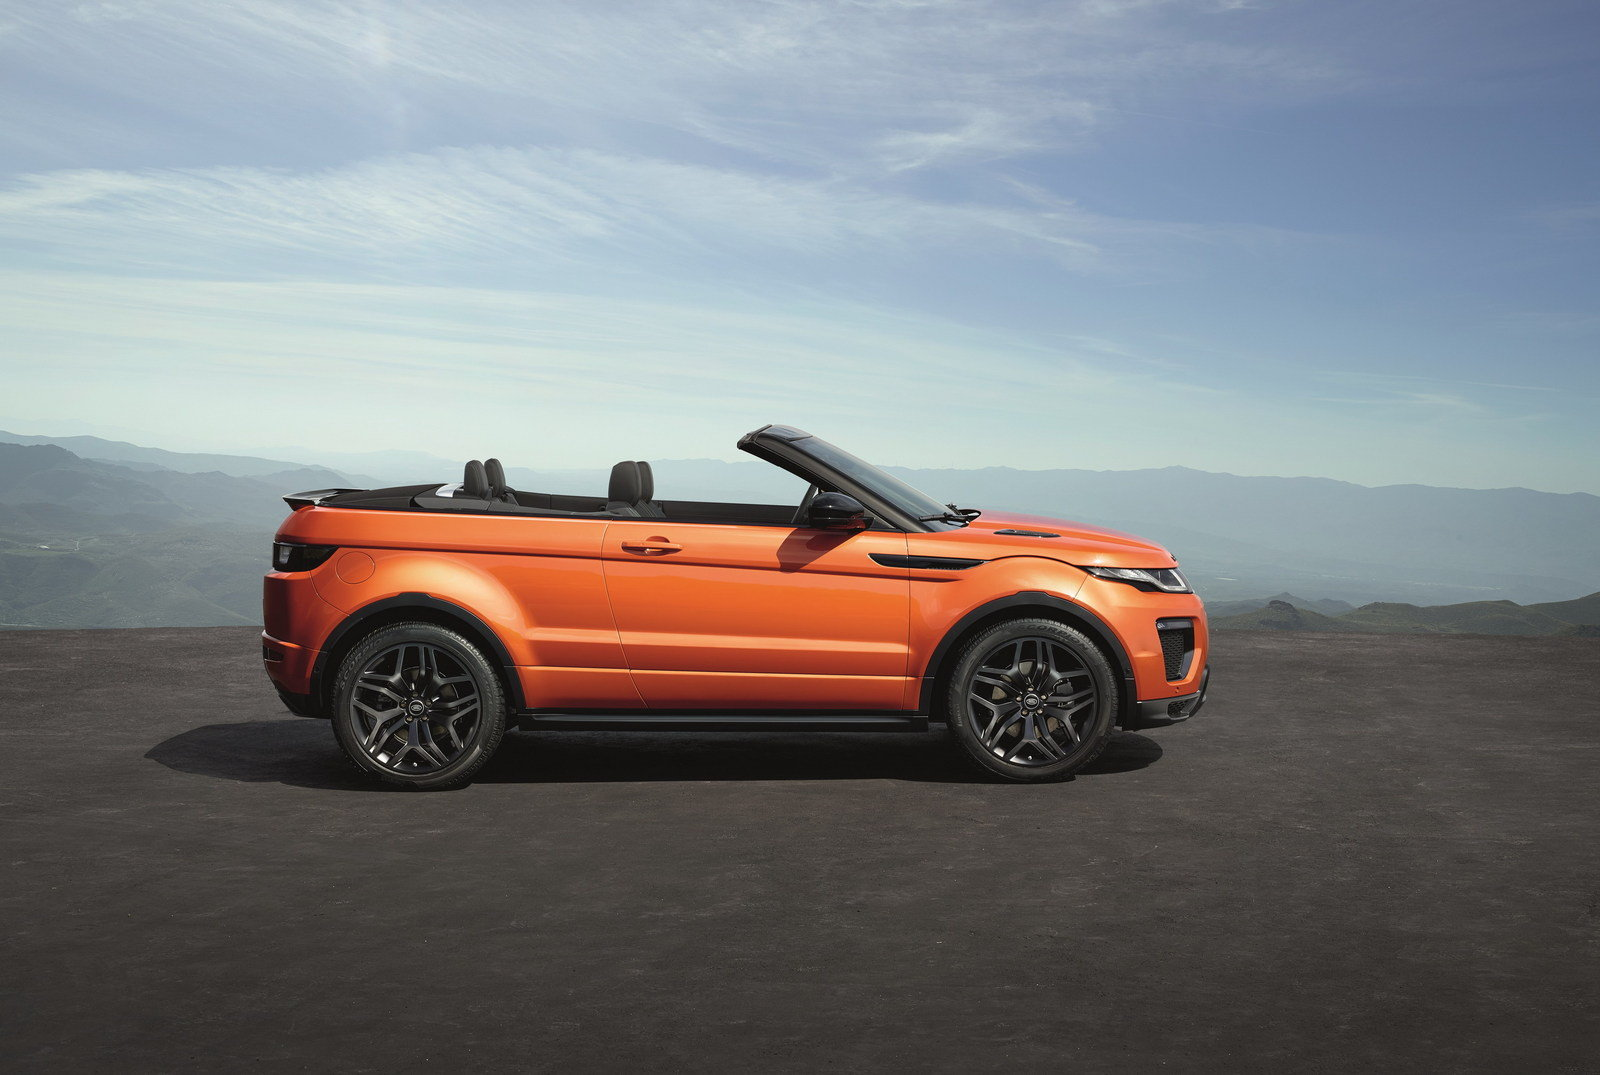 2017 land rover range rover evoque convertible picture 654608 truck review top speed. Black Bedroom Furniture Sets. Home Design Ideas